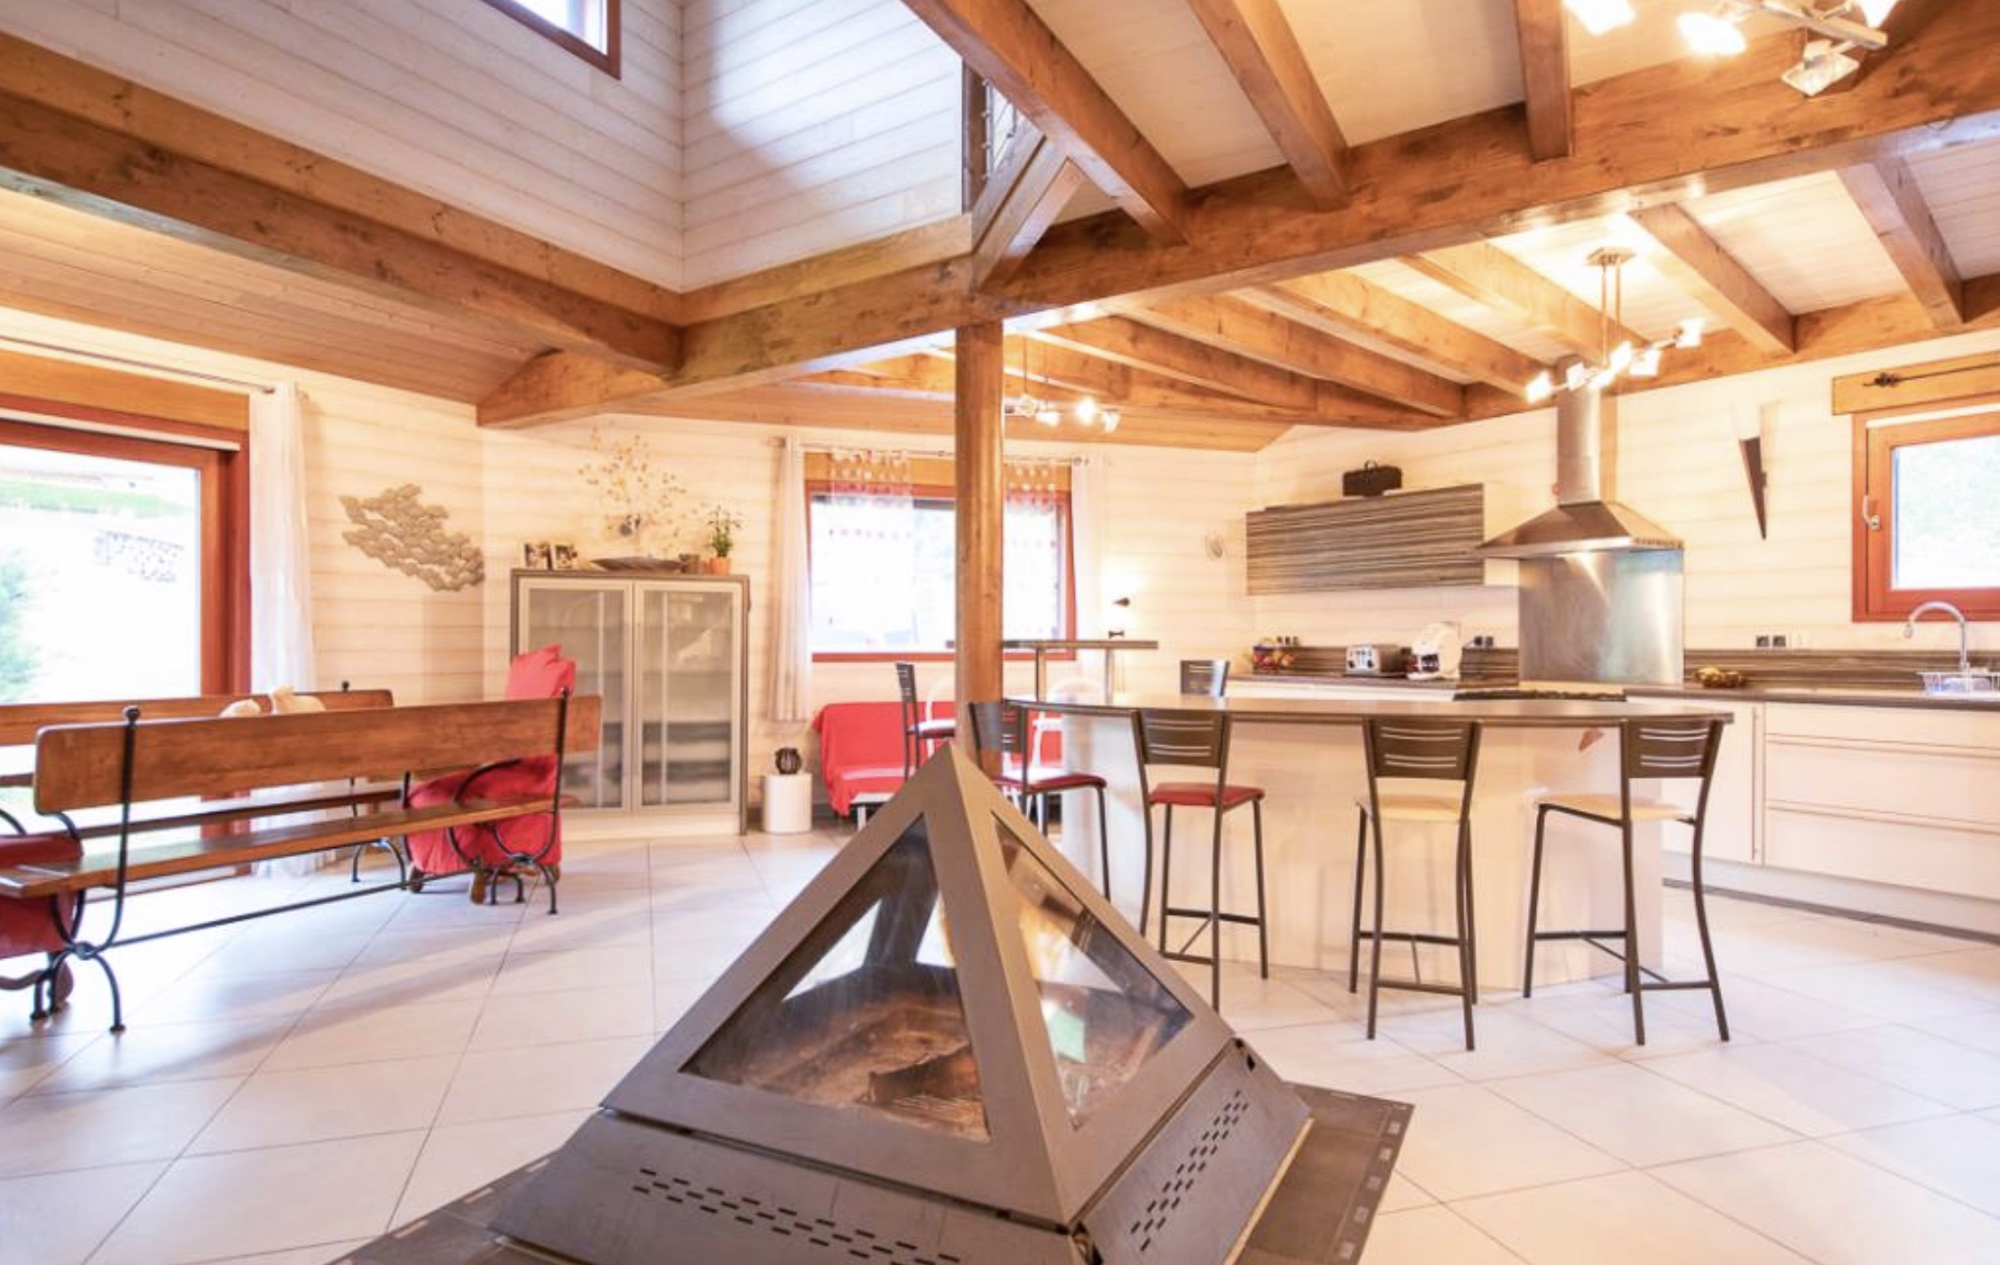 Chalet for sale in the French Alps